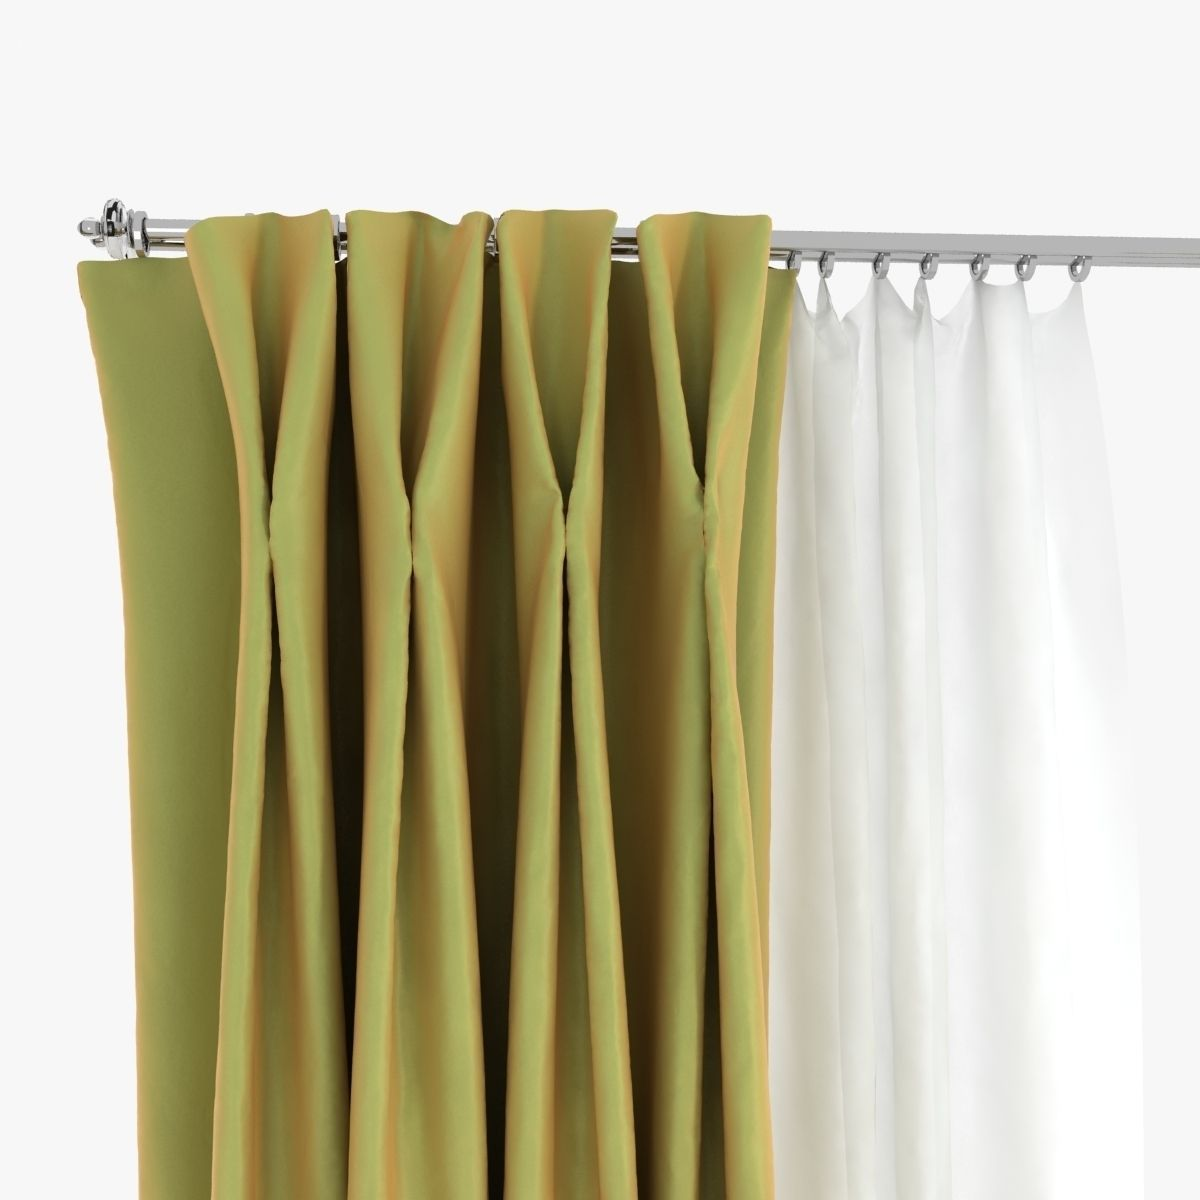 pinch curtains scaled buy pleat blockout online curtain products wonderland lawsonjutepp lawson